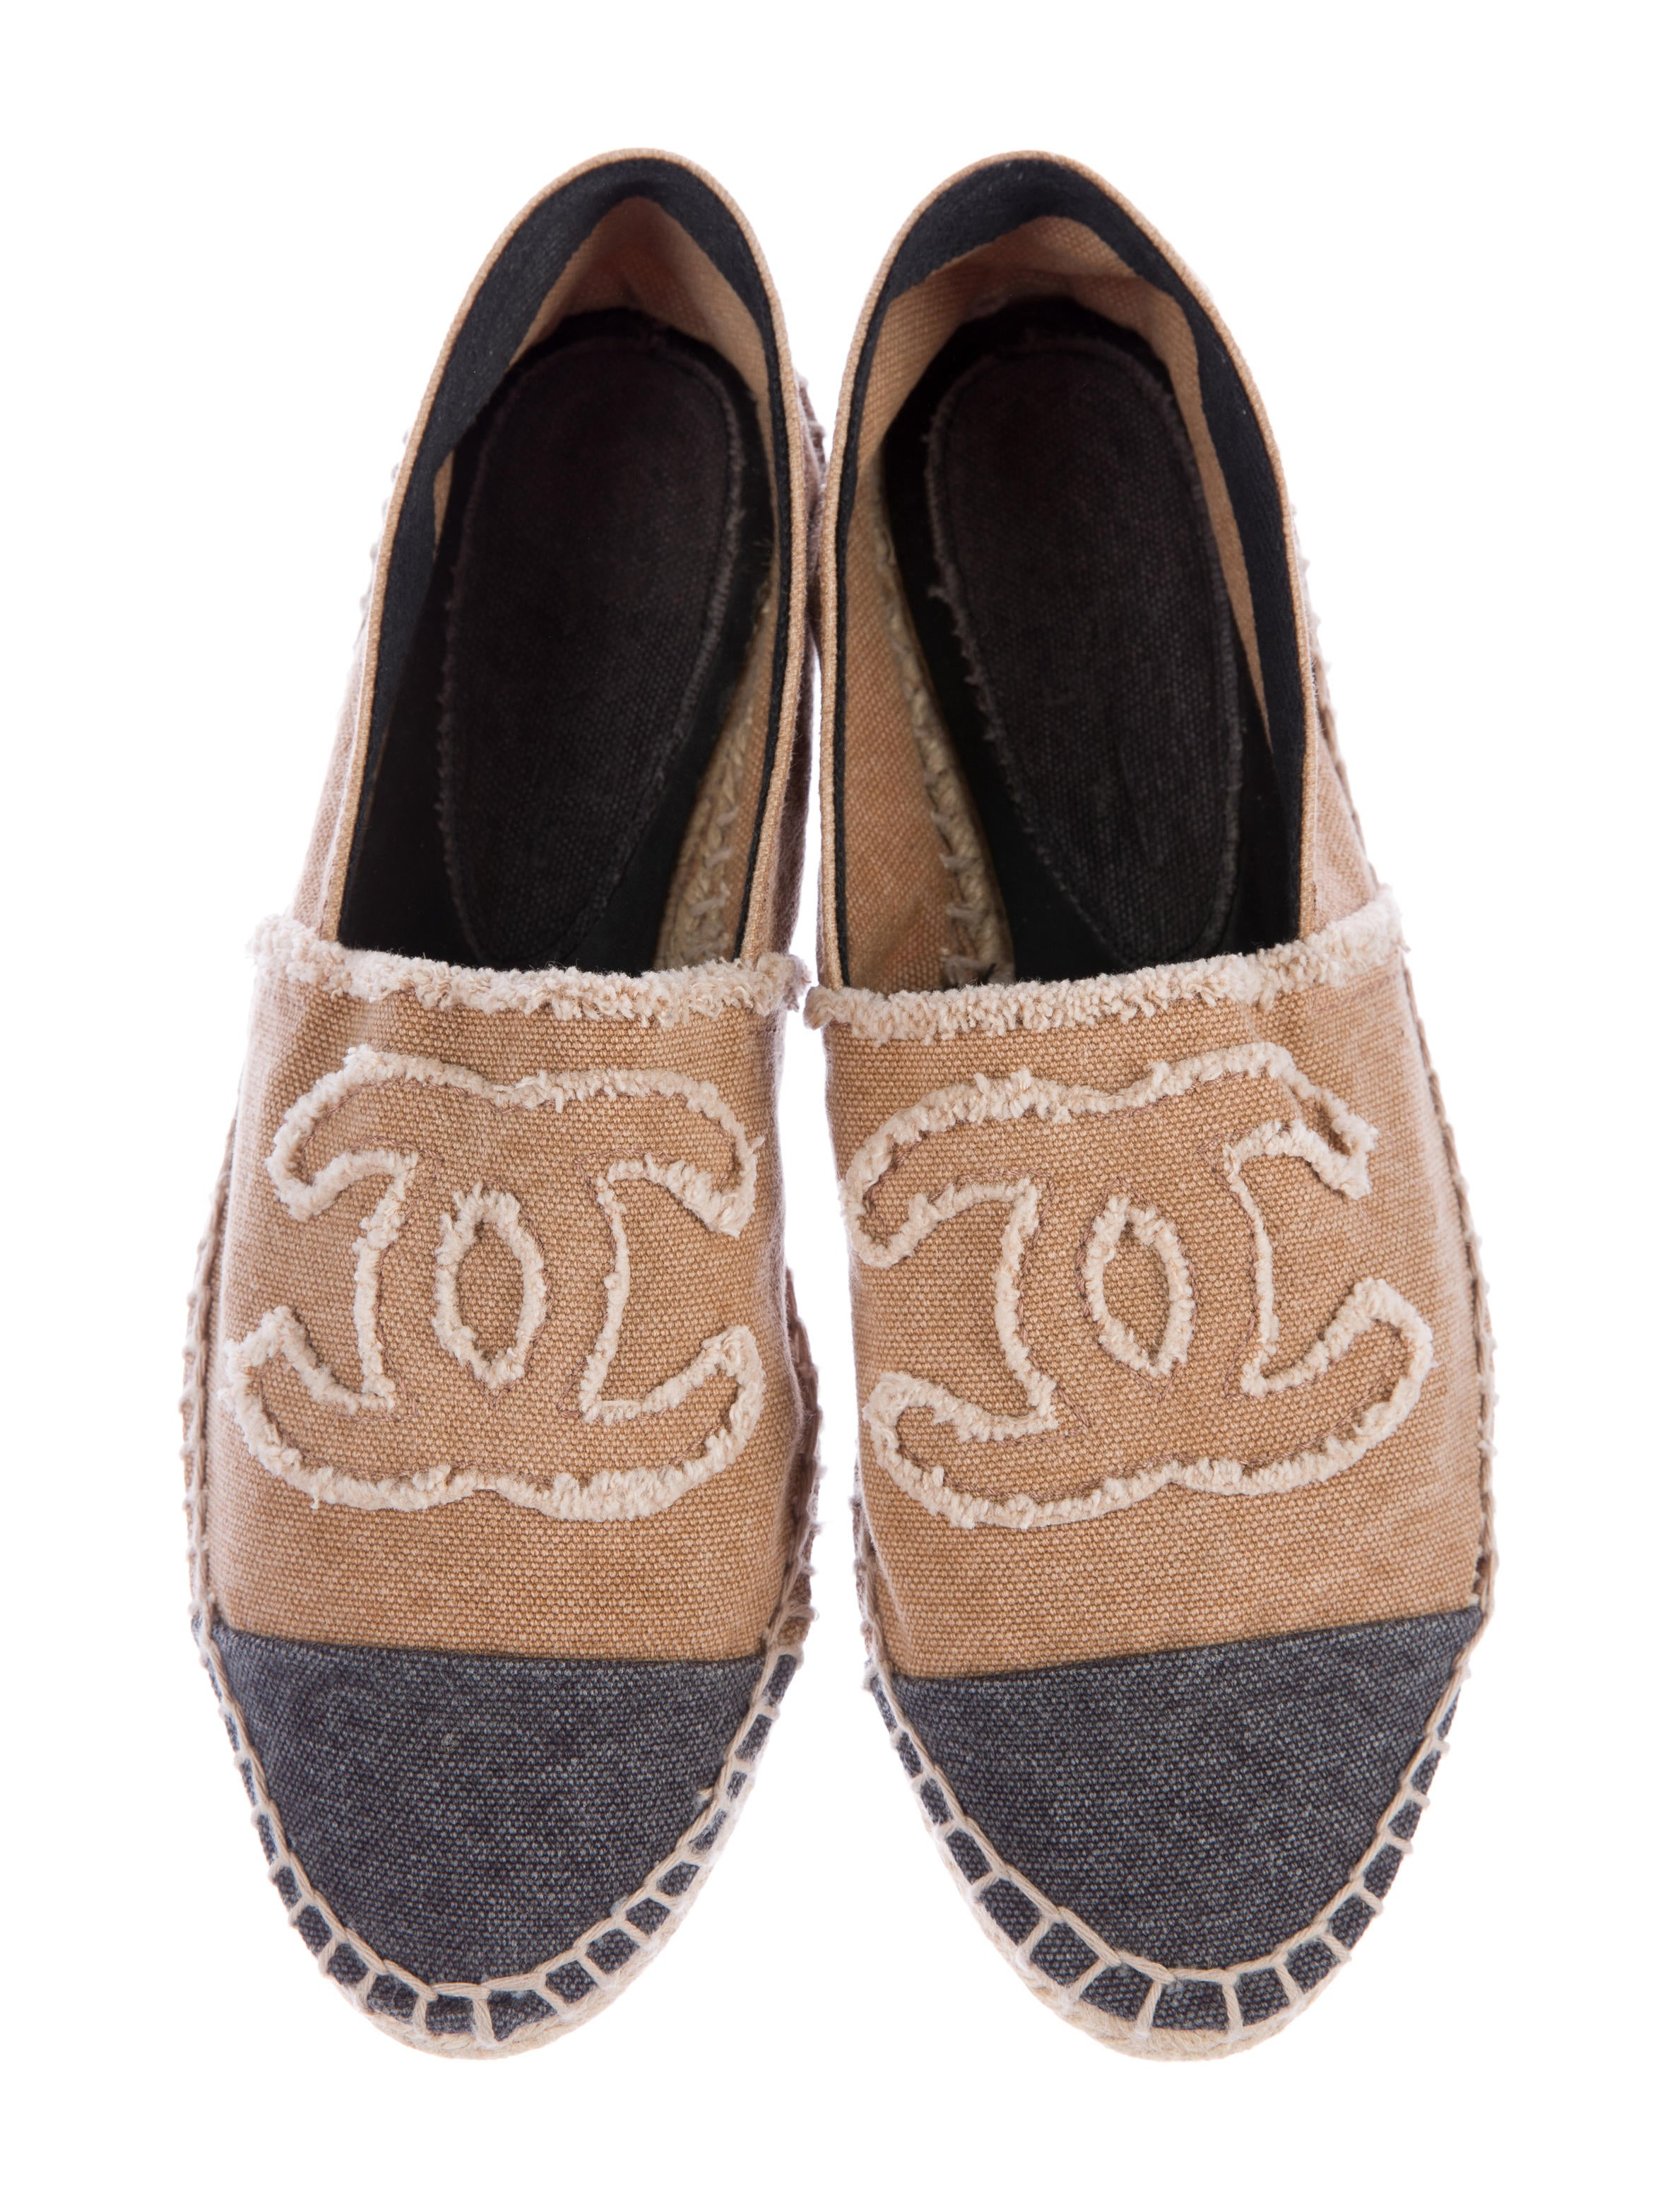 chanel canvas espadrille flats shoes cha174717 the